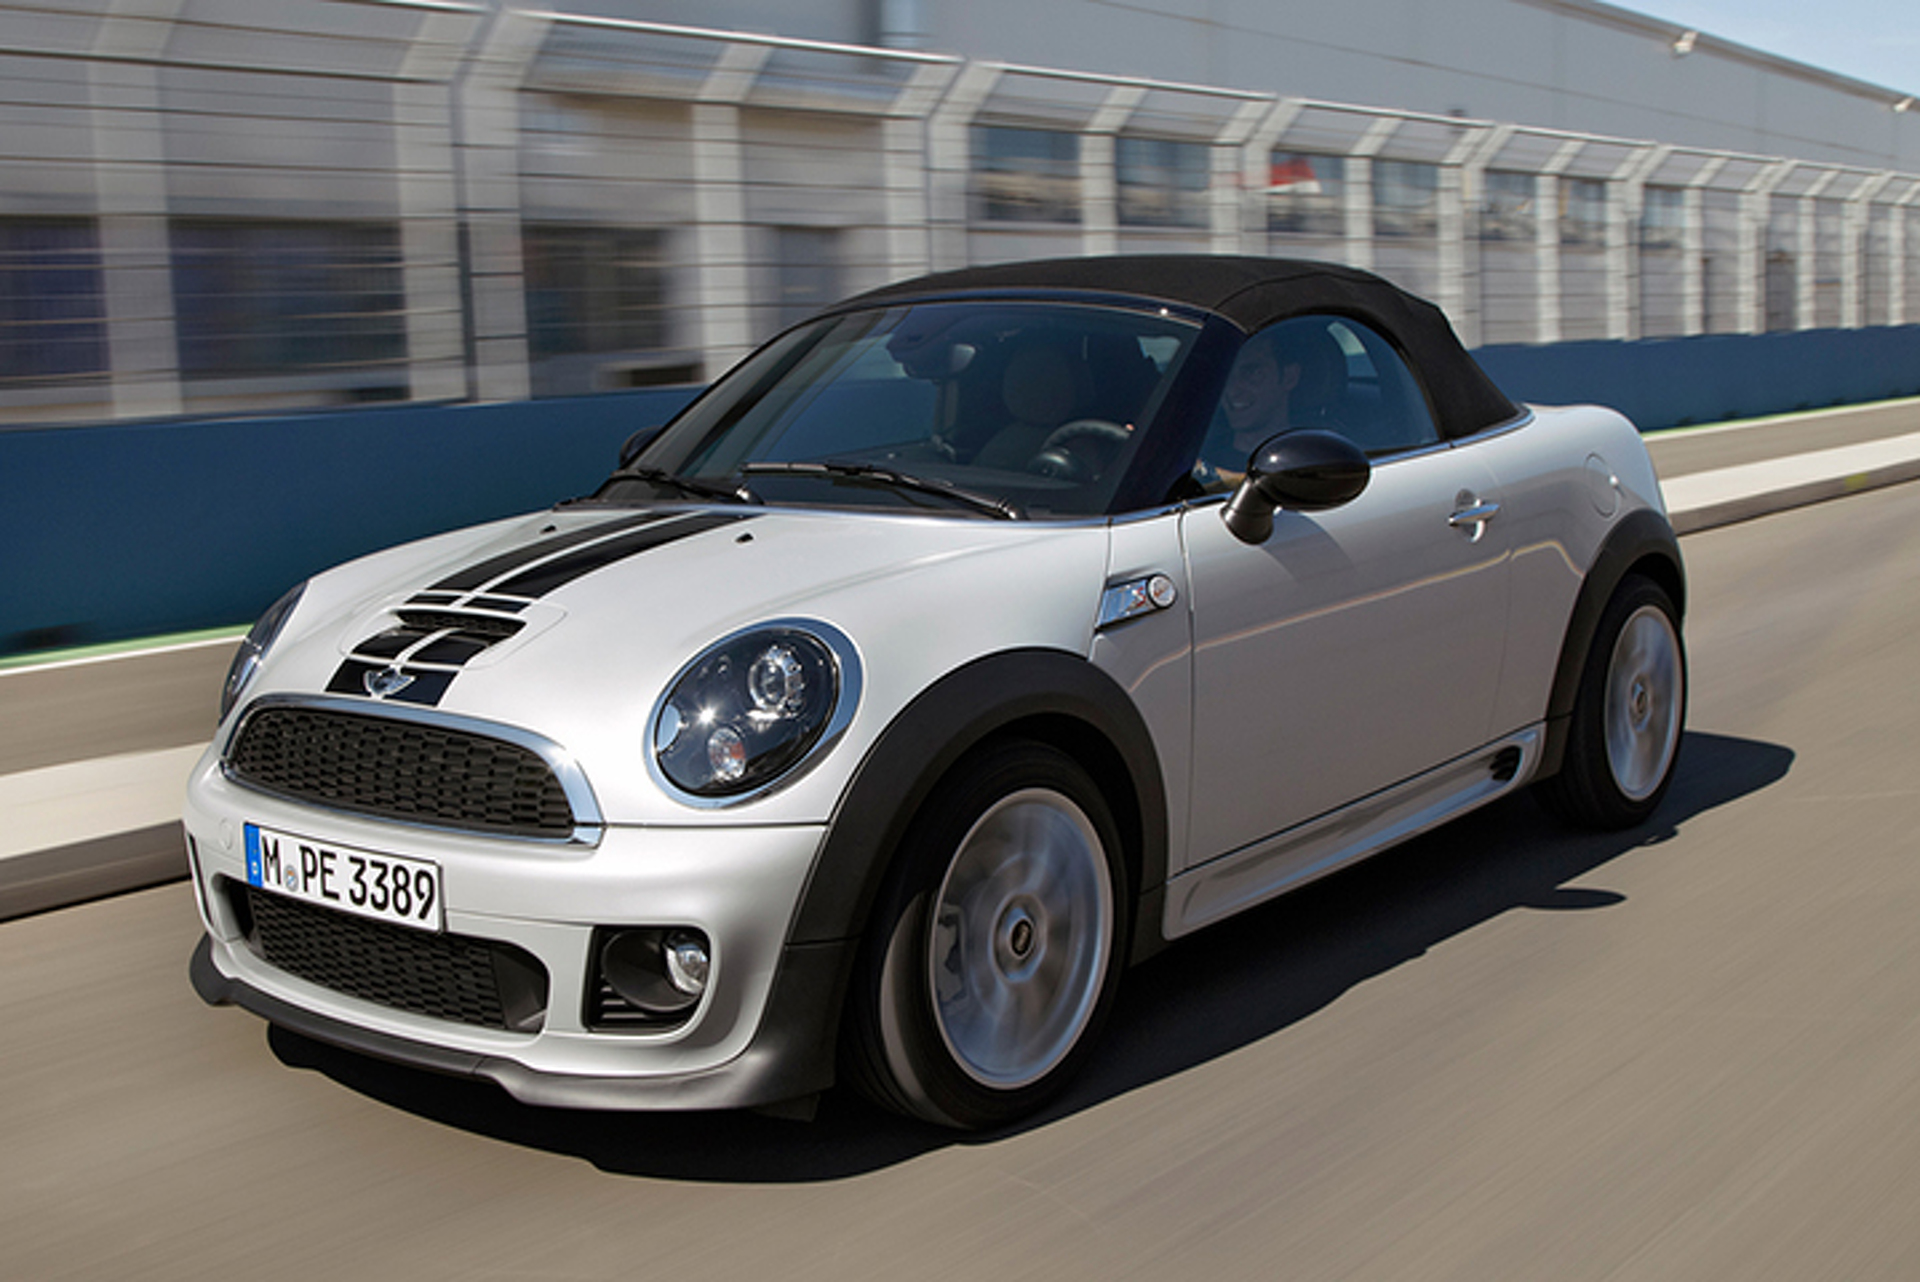 Top 10 Cars Women Crave for Their Midlife Crisis